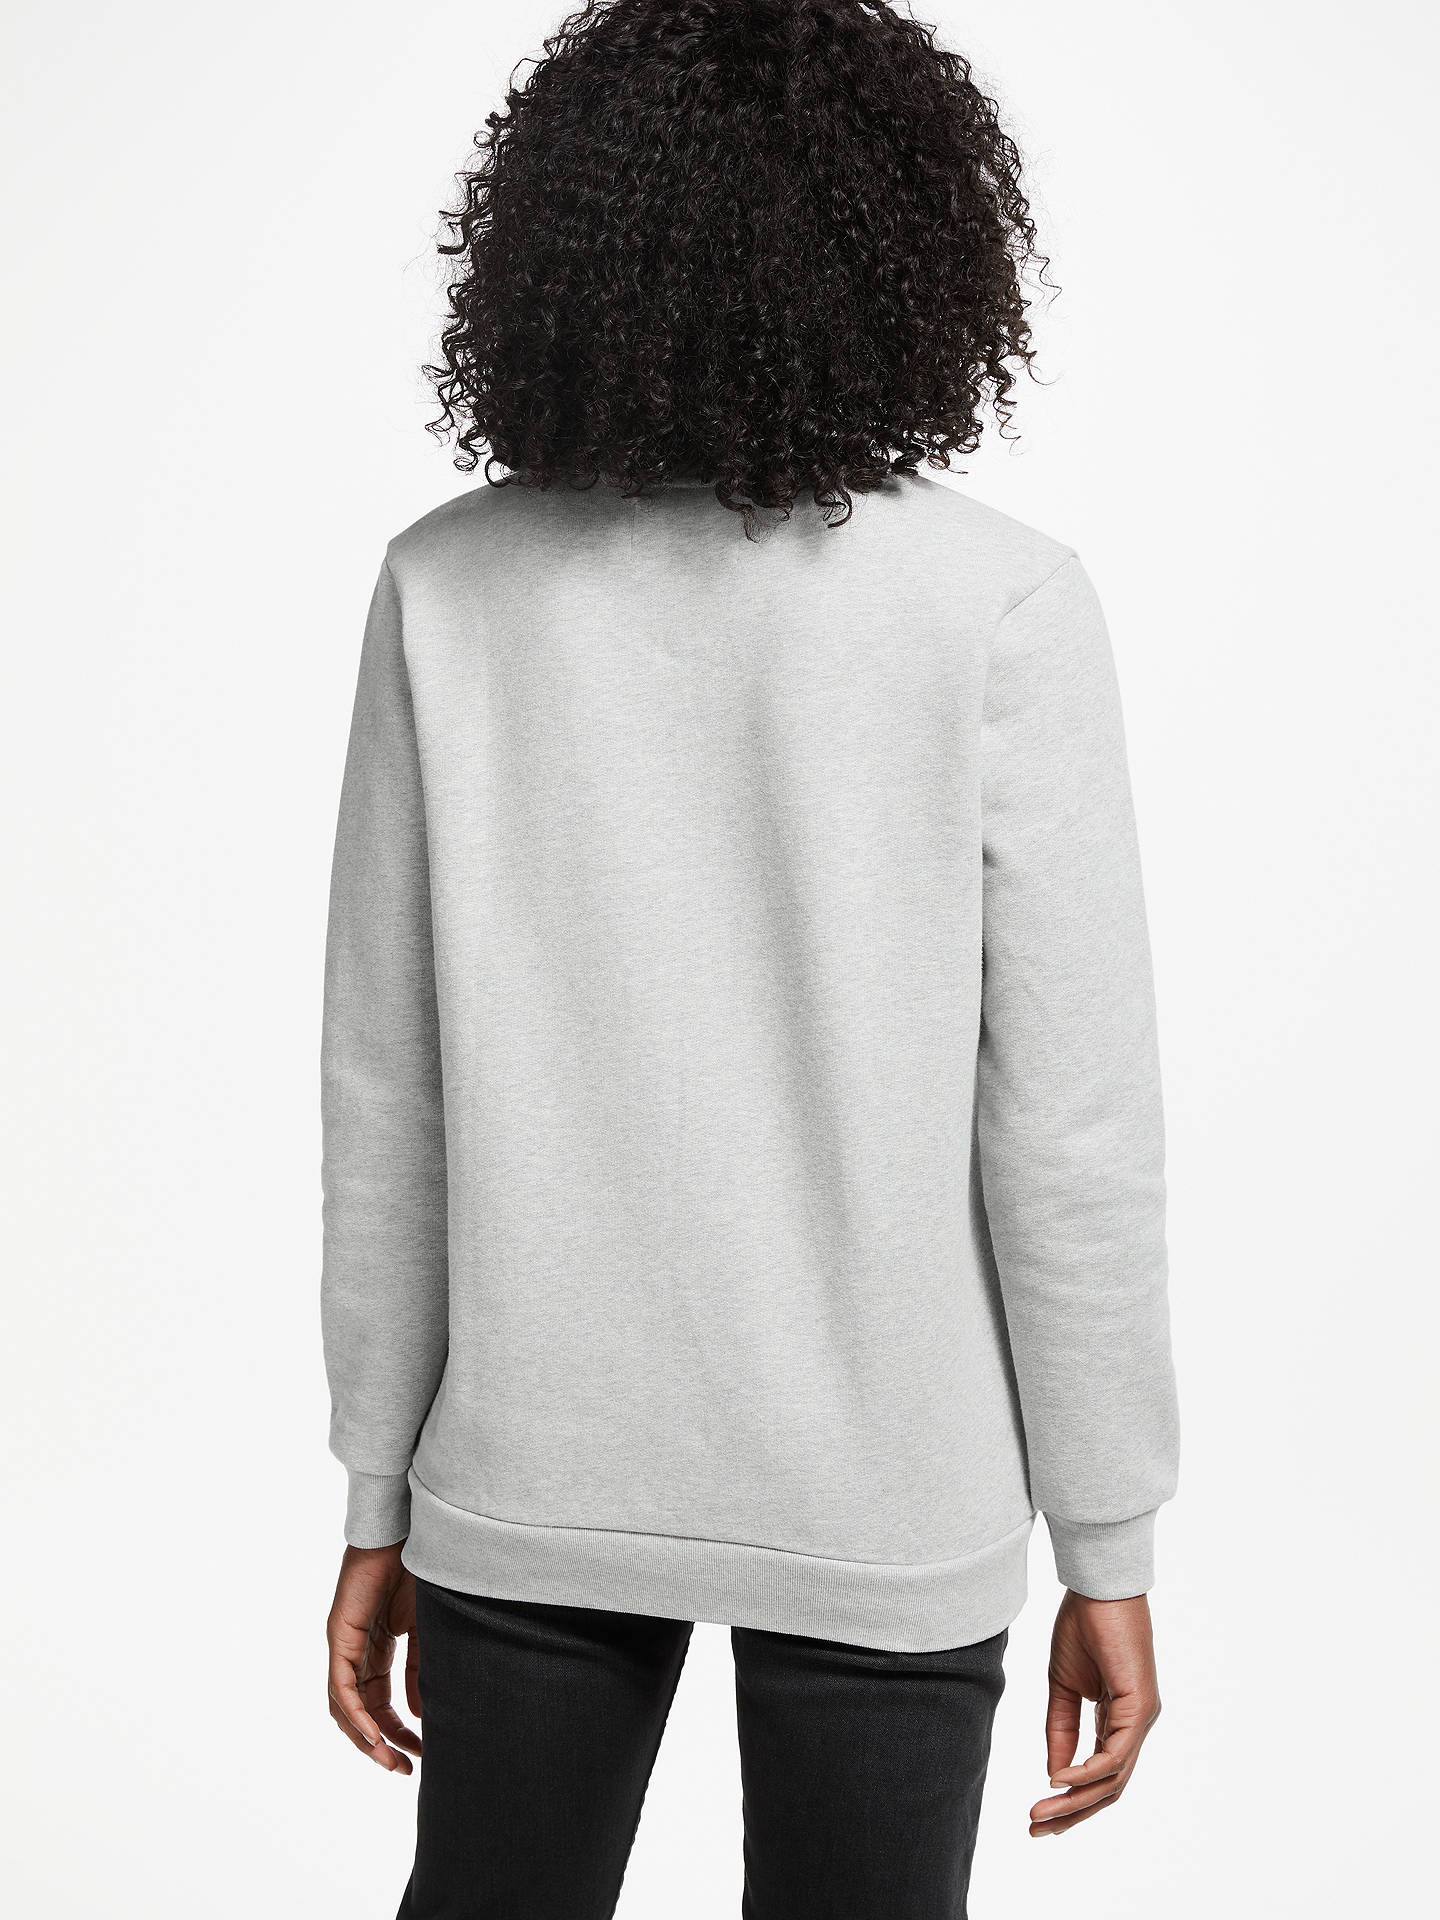 BuyCalvin Klein Core Monogram Logo Sweatshirt, Light Grey Heather, XS Online at johnlewis.com